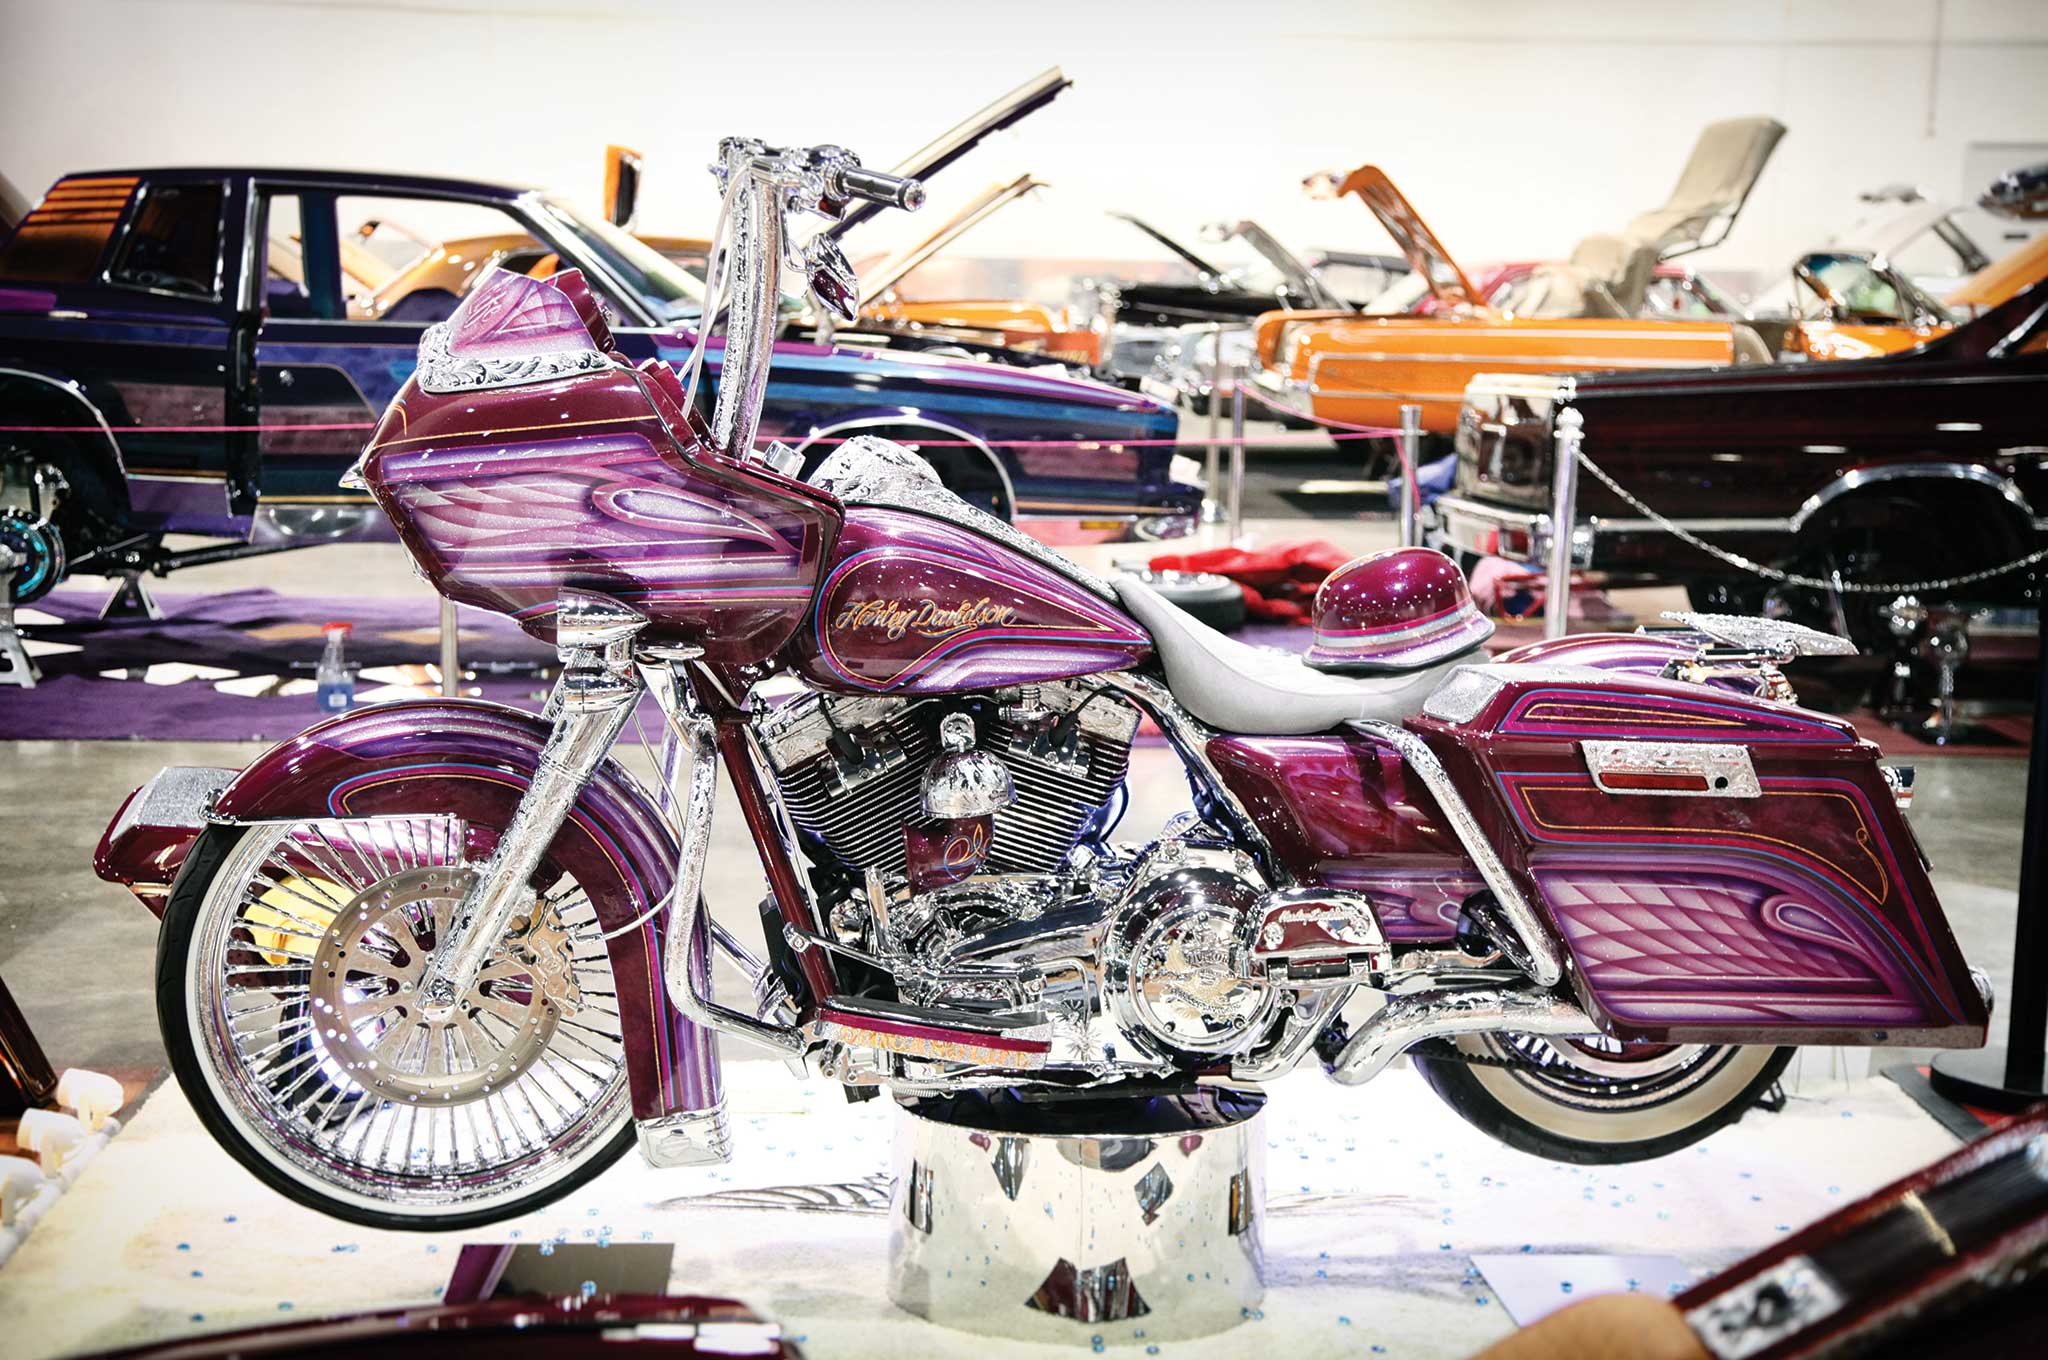 Harleys are making a rumble on the lowrider scene.